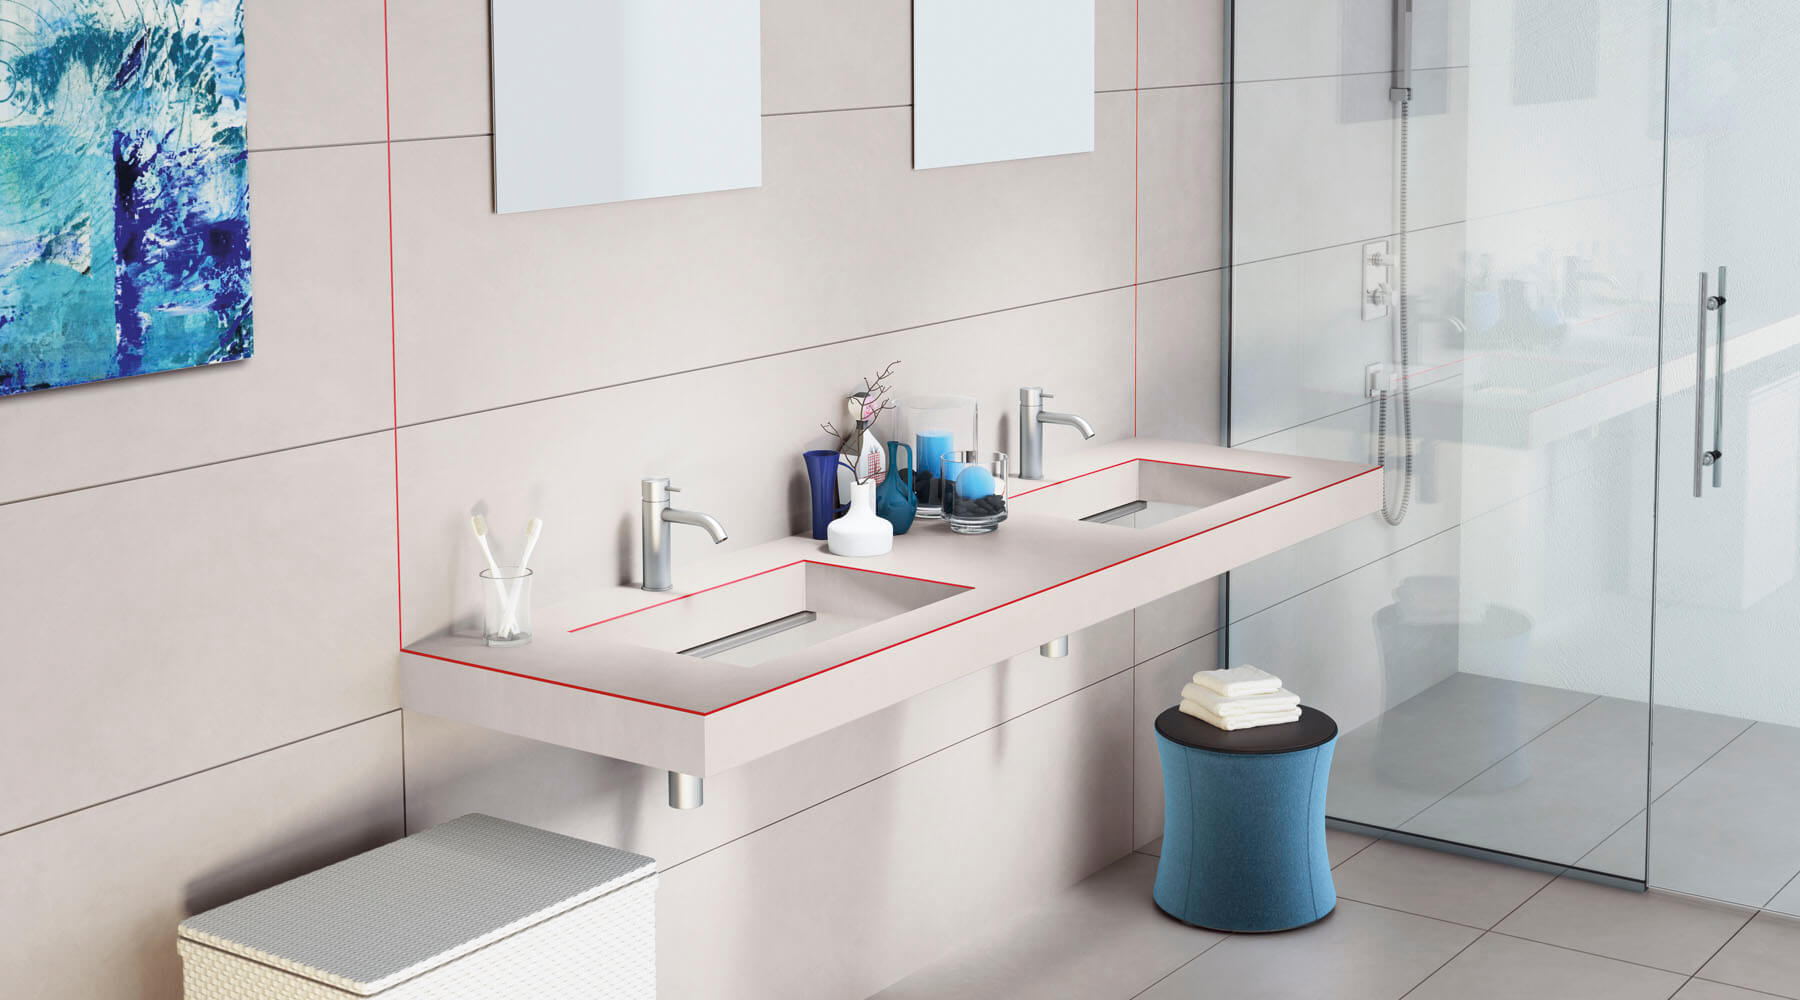 Awesome Lavandini Bagno Prezzi Ideas - Skilifts.us - skilifts.us